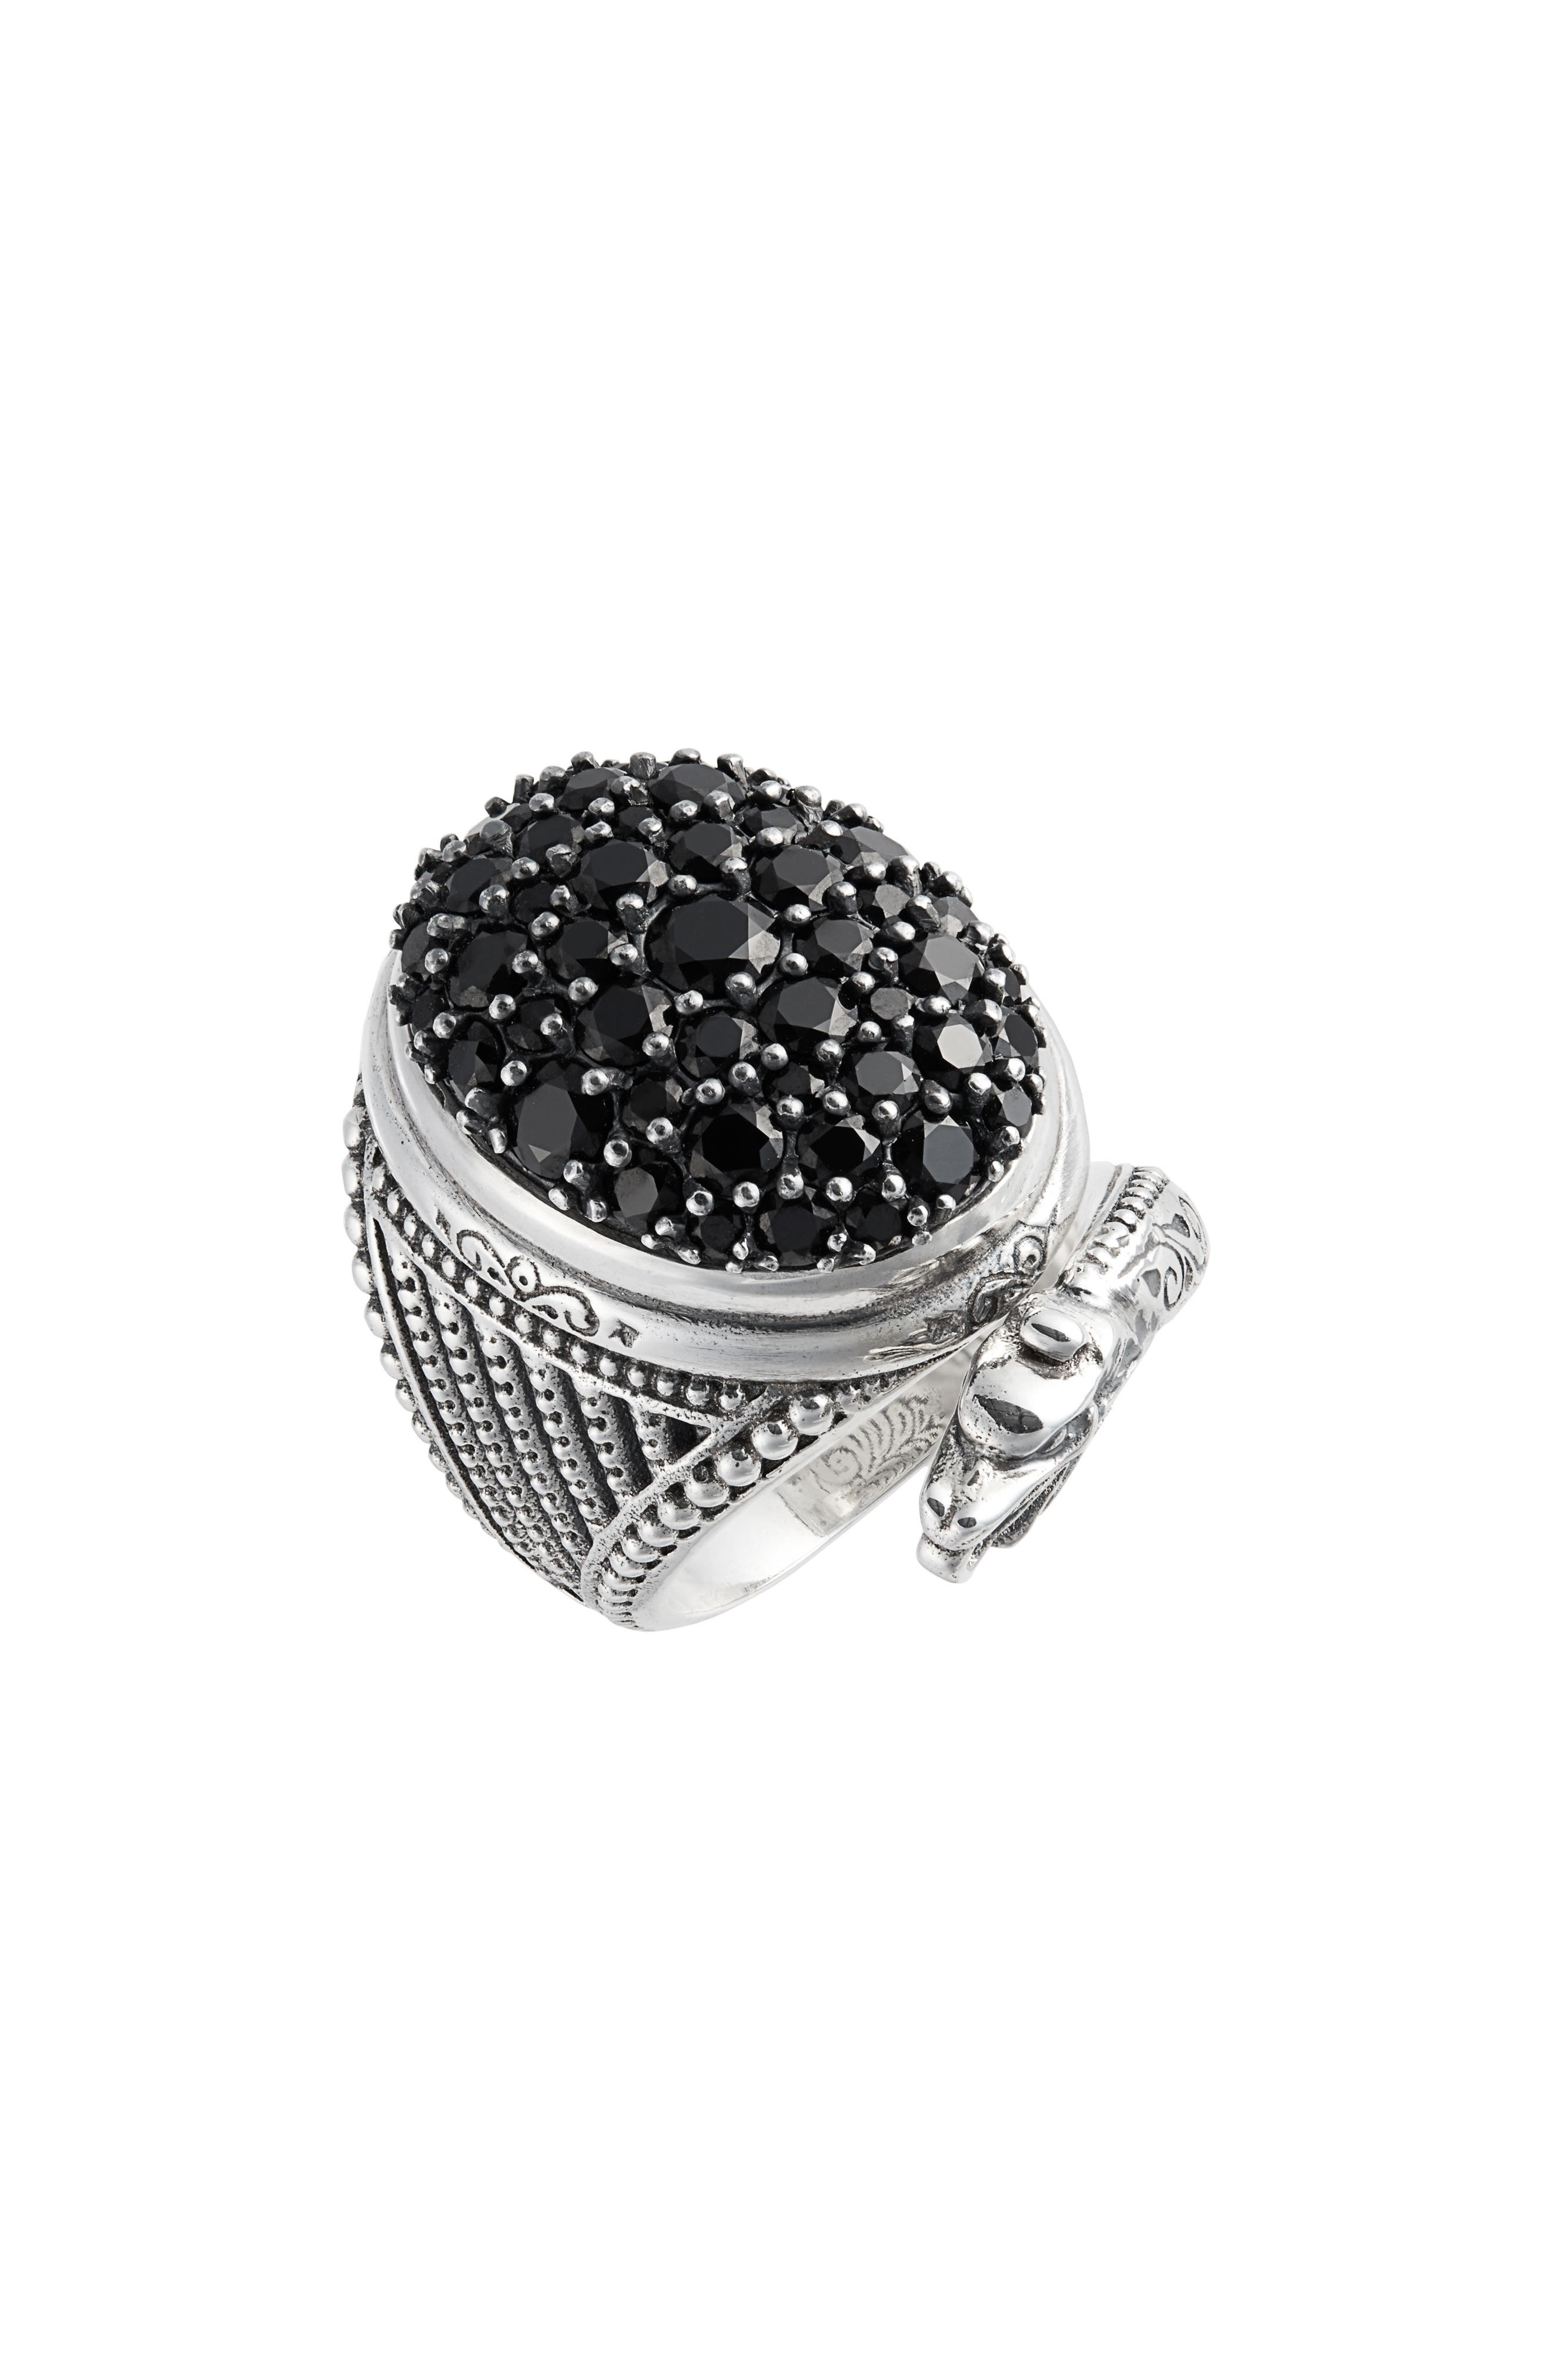 An intricately carved serpent slithers around the glistening spinel-paved center of a statement-making sterling-silver ring handcrafted in Greece. Style Name: Konstantino Circe Black Spinel Snake Ring. Style Number: 5745024. Available in stores.